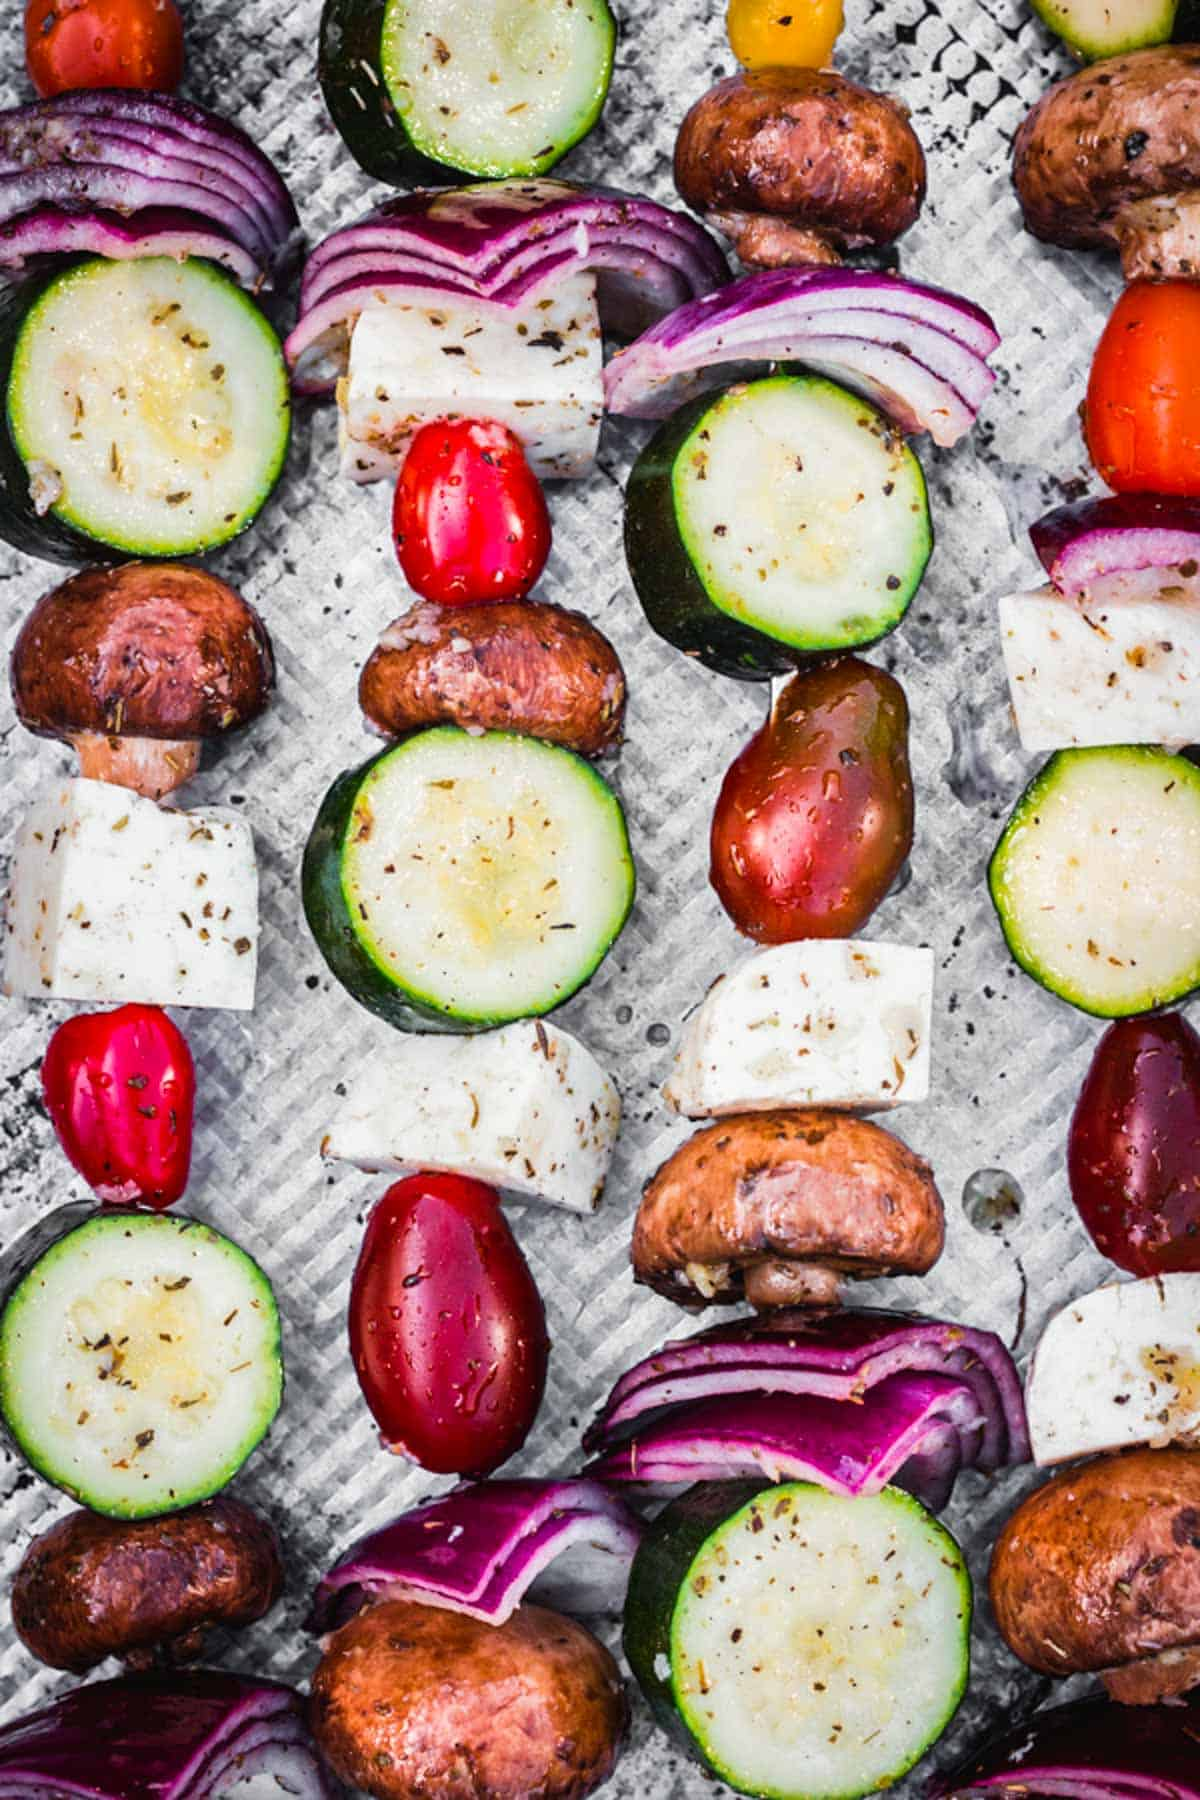 A close-up of veggies and Halloumi cheese on skewers ready to be grilled.